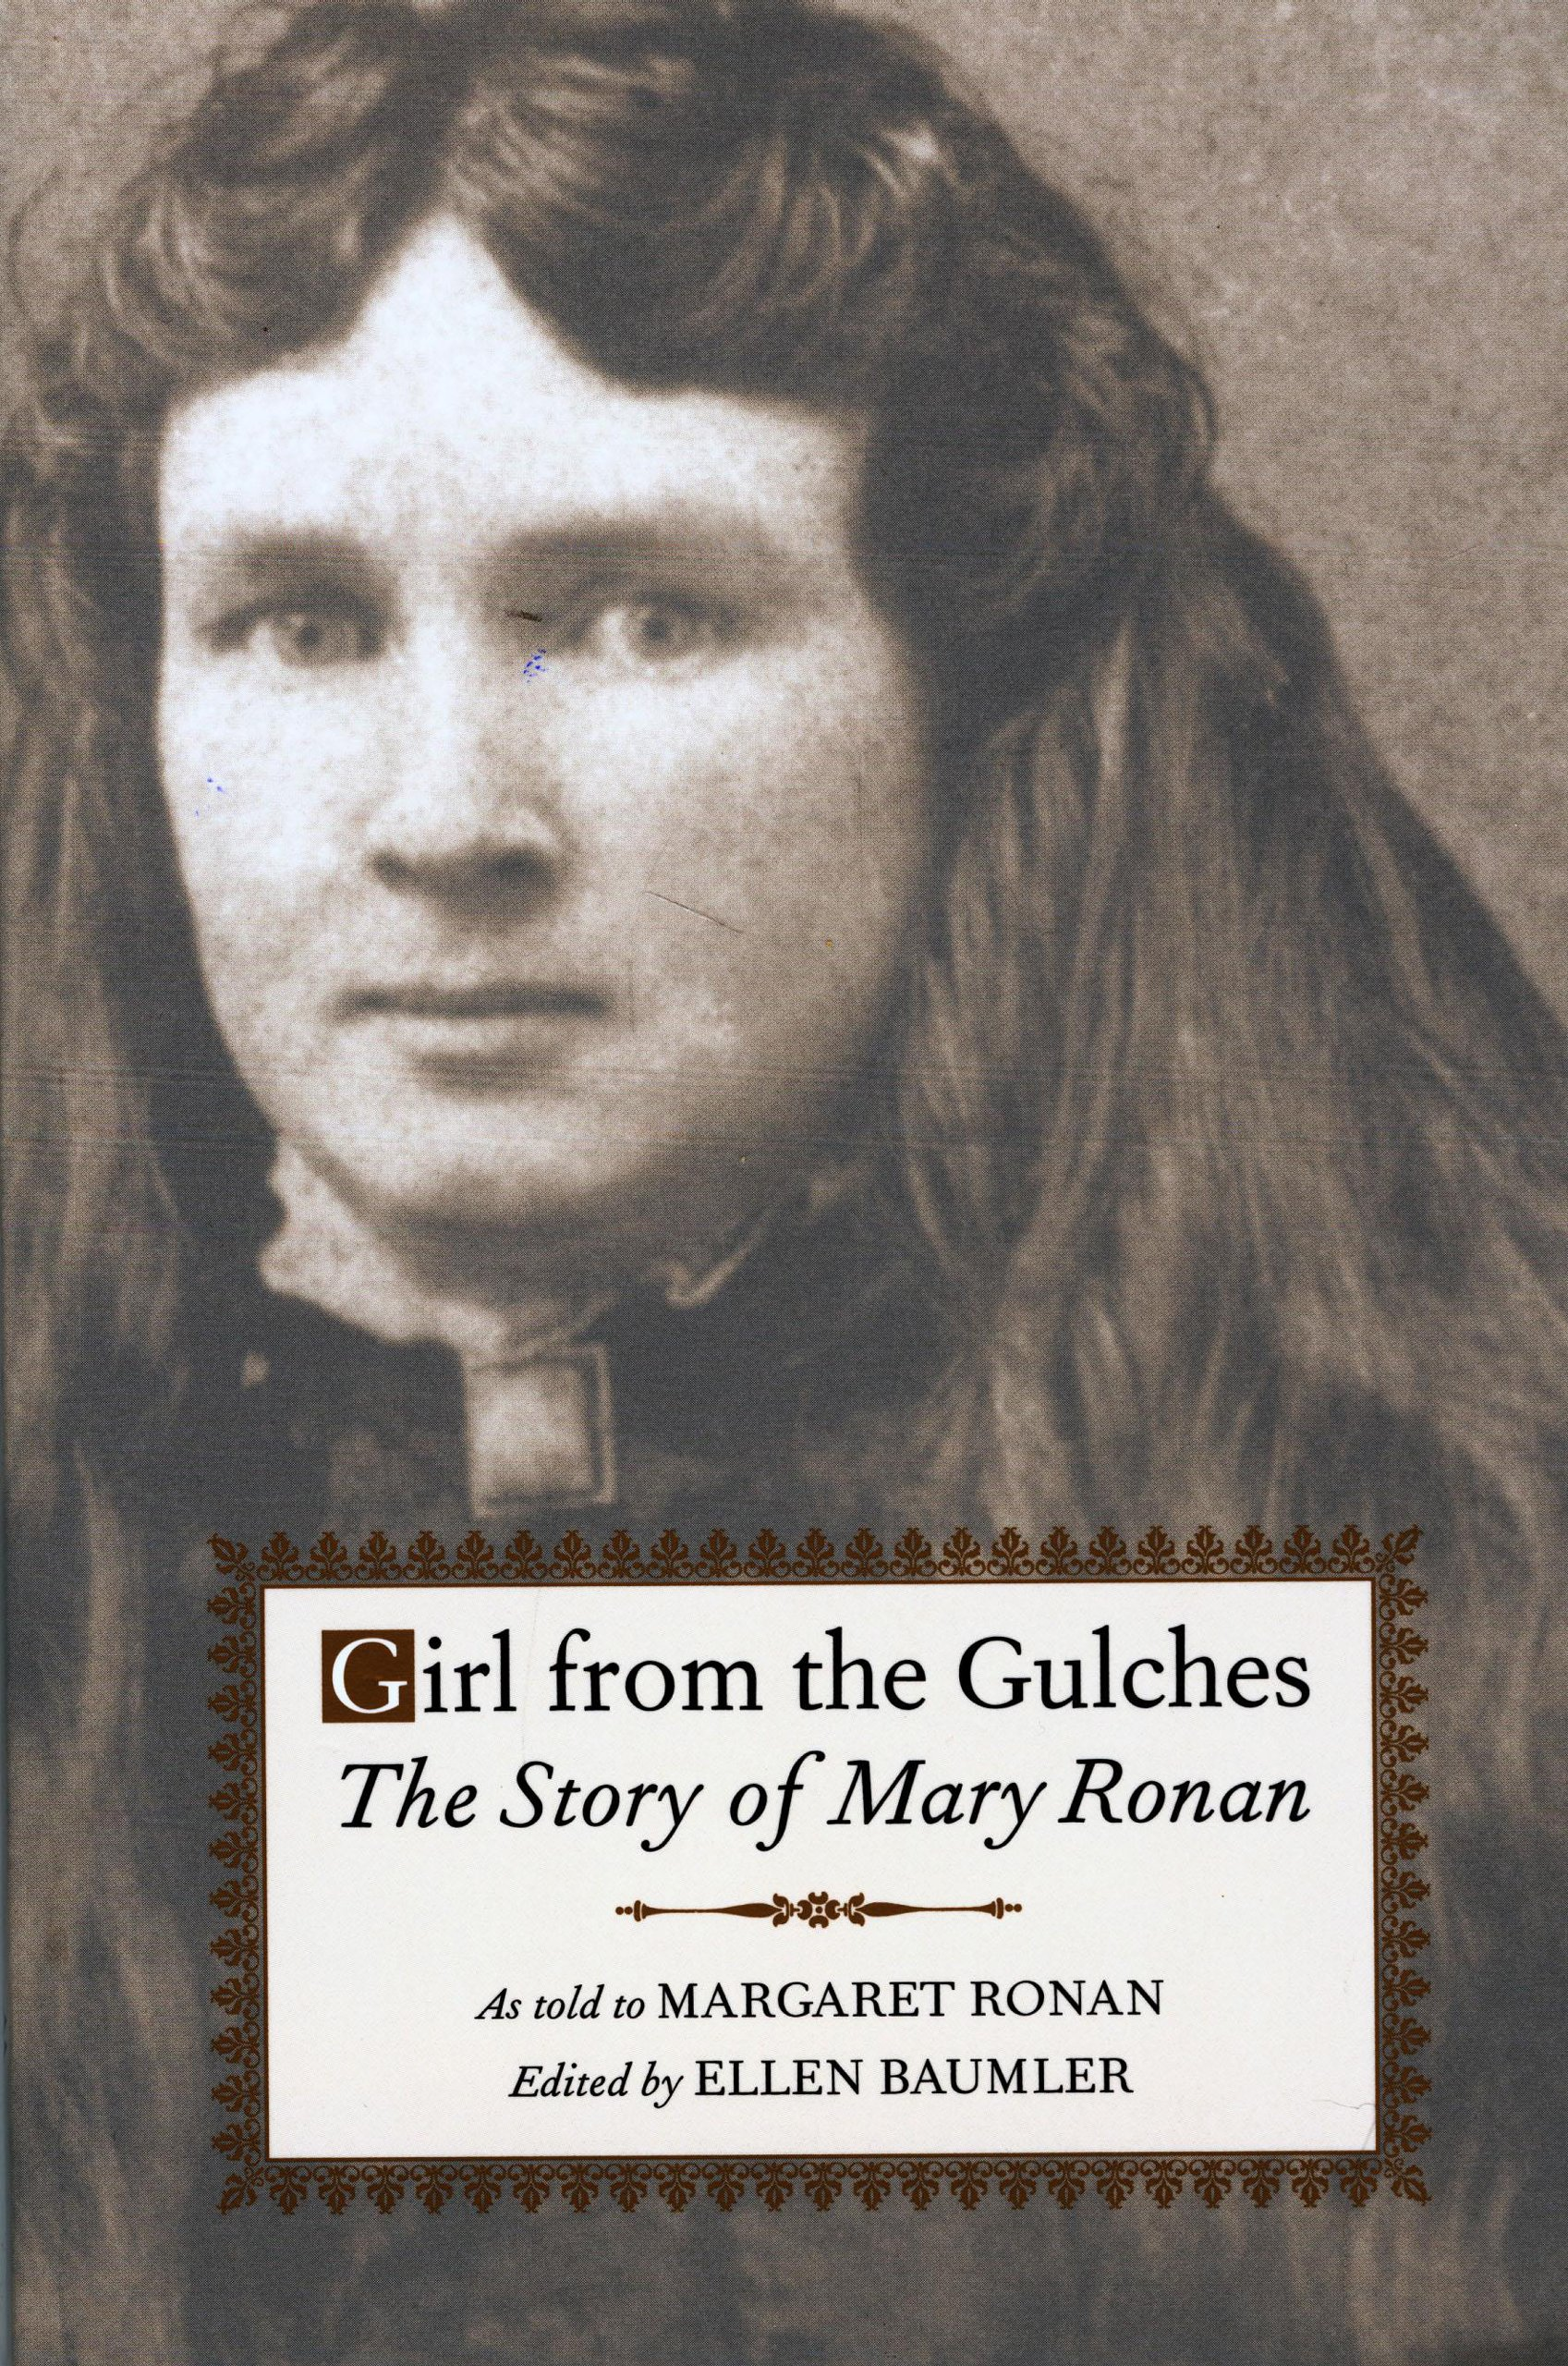 Girl from the Gulches: The Story of Mary Ronan: Baumler, Ellen: 9780917298974: Amazon.com: Books